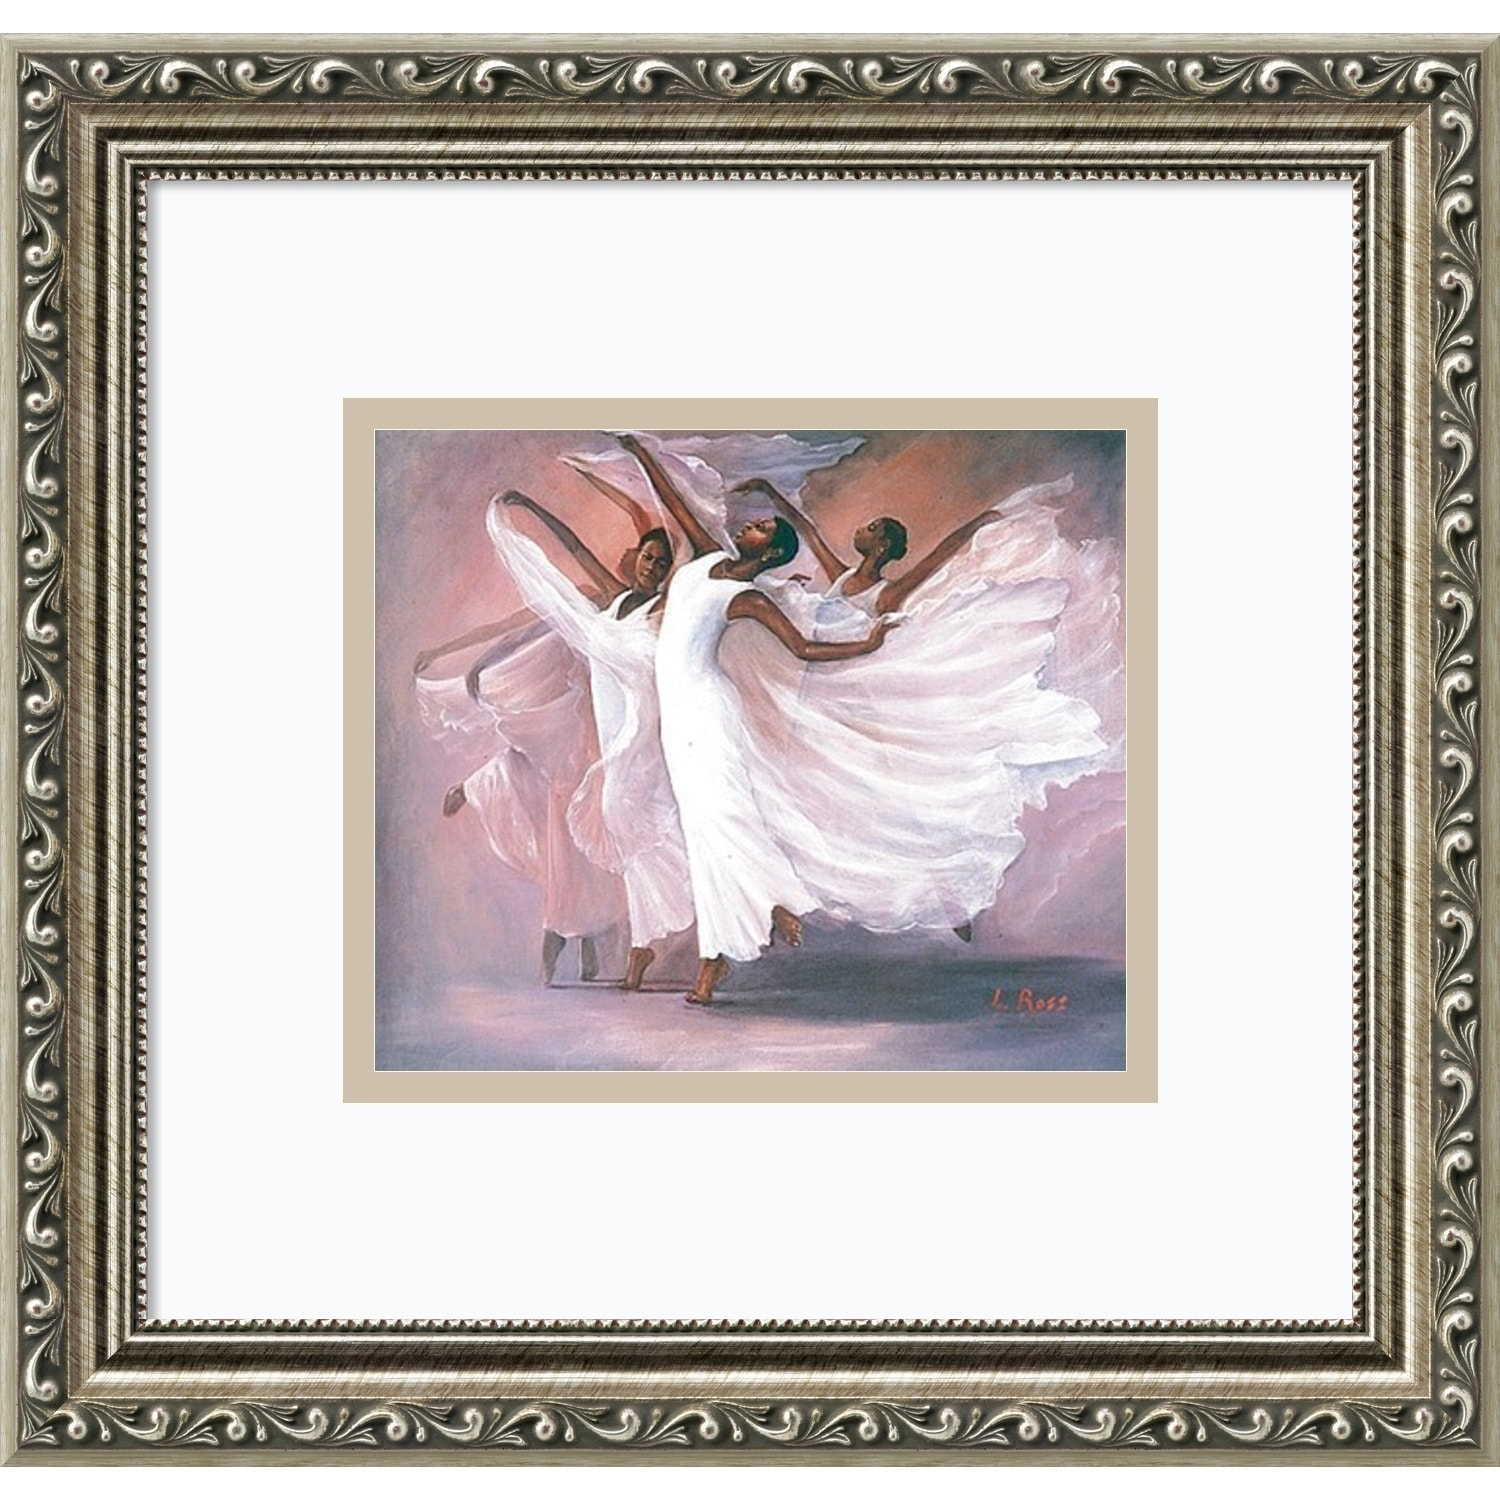 Framed art print angel wings by lavarne ross 16 x 14 inch free framed art print angel wings by lavarne ross 16 x 14 inch free shipping today overstock 23874940 jeuxipadfo Image collections